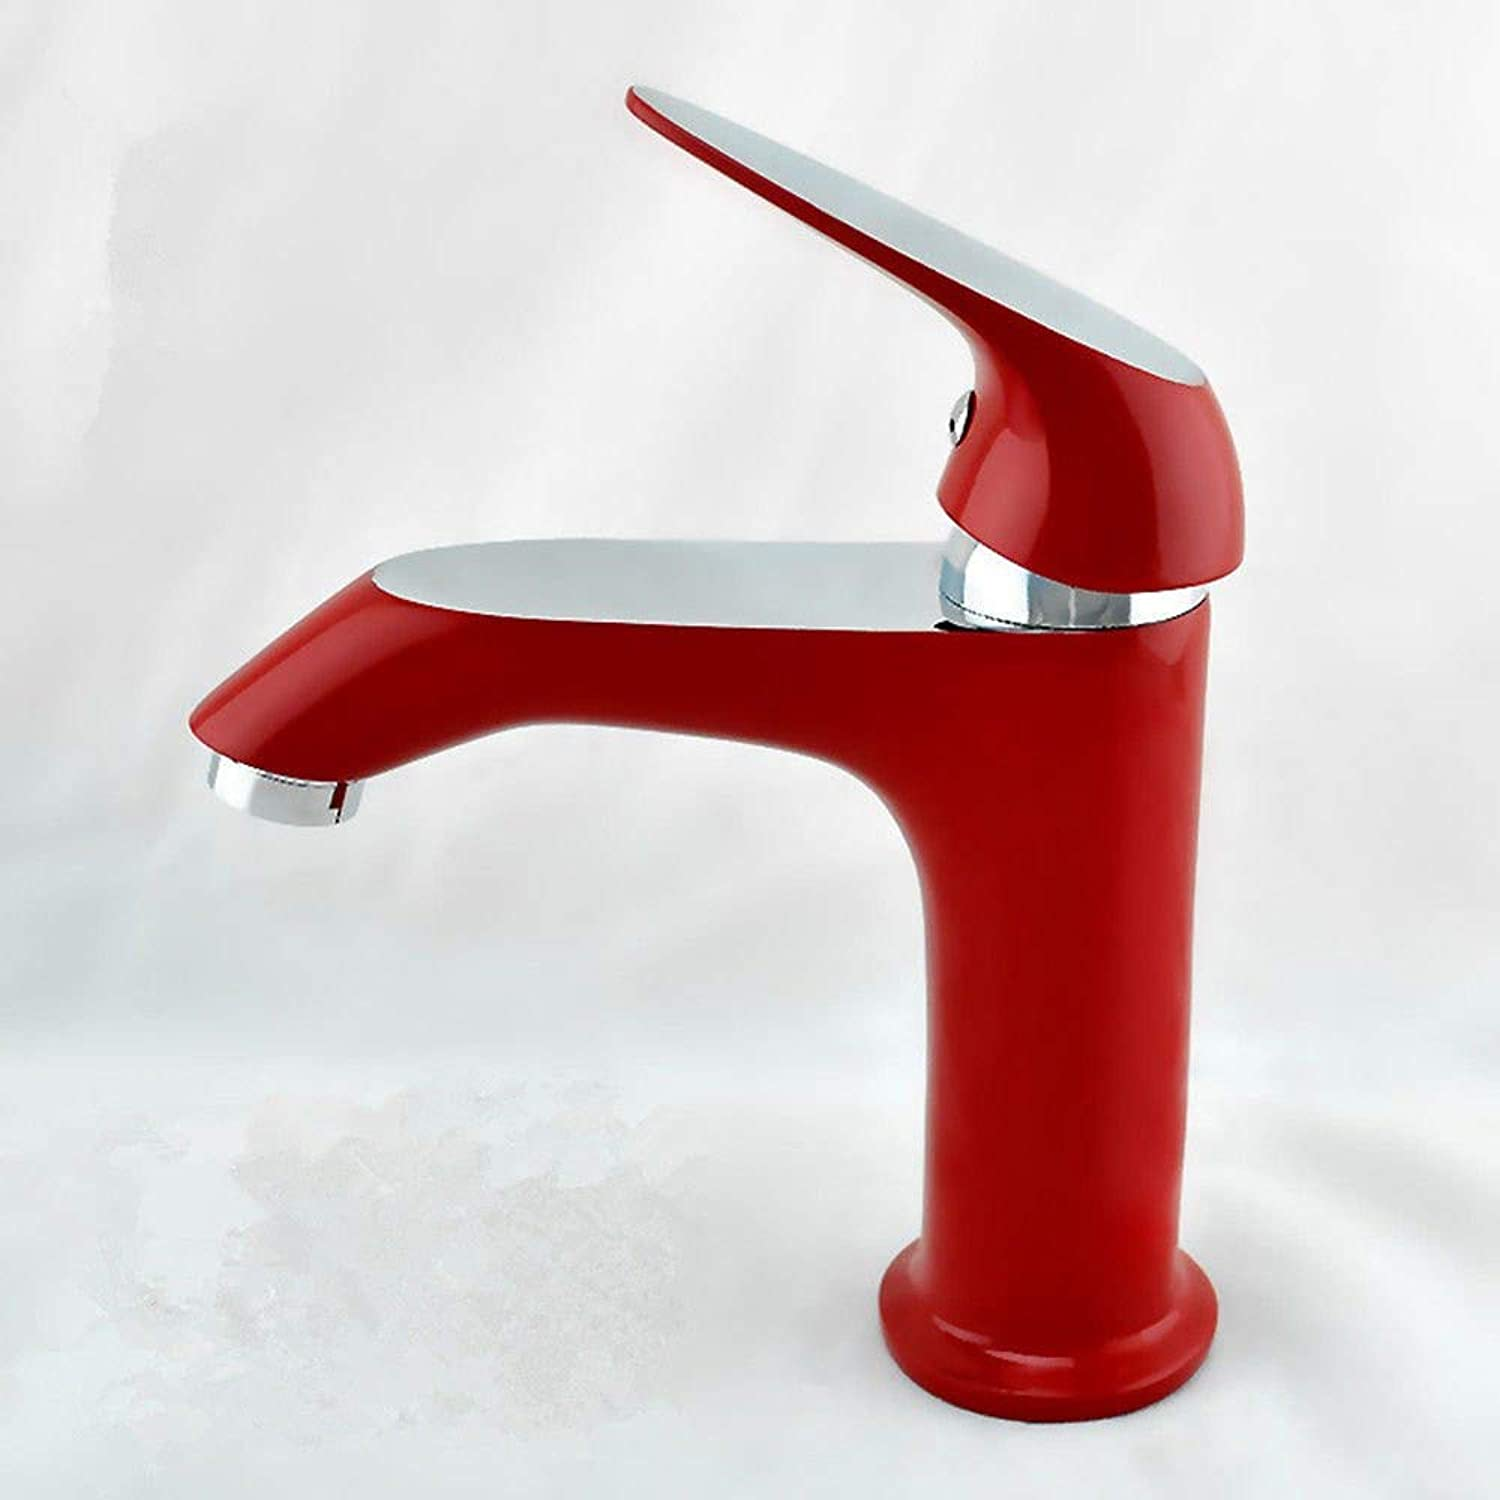 Faucetbathroom Sink Faucet Vanity Faucet Retro Brushed Hot & Cold Water Sink Mixer Tap for Lavatory Vanity Sink Faucet